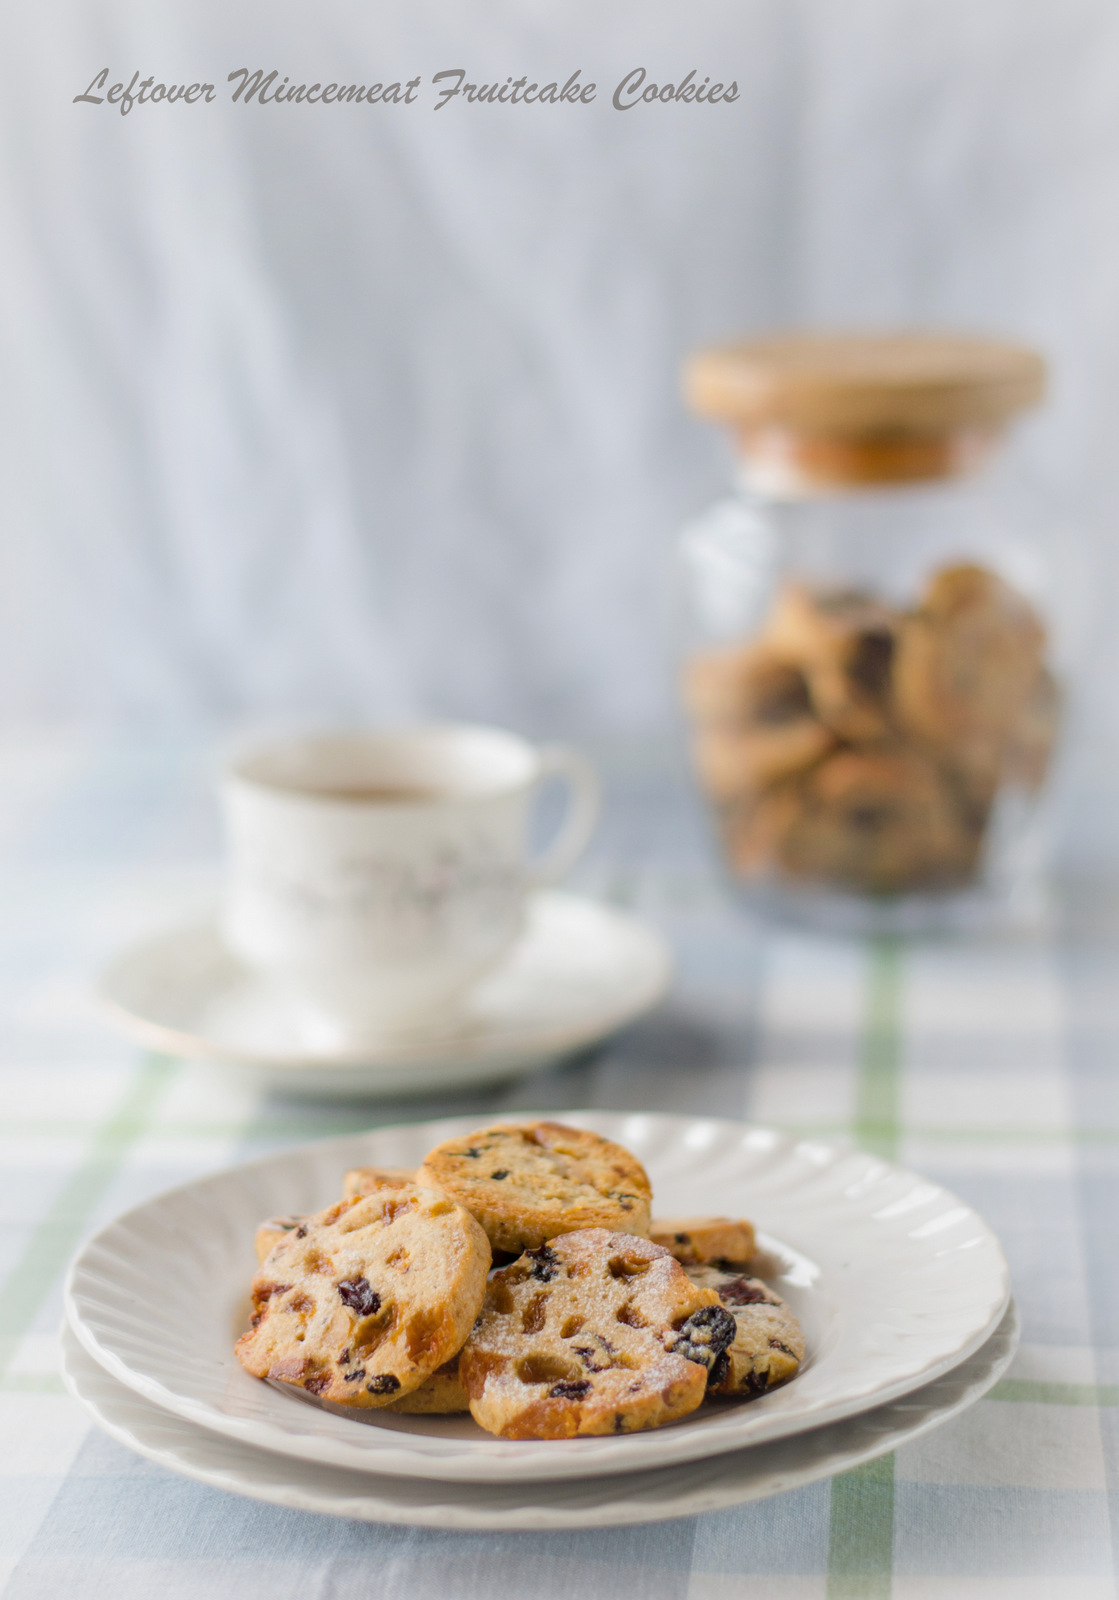 Leftover Mincemeat Fruitcake Cookies - The White Ramekins